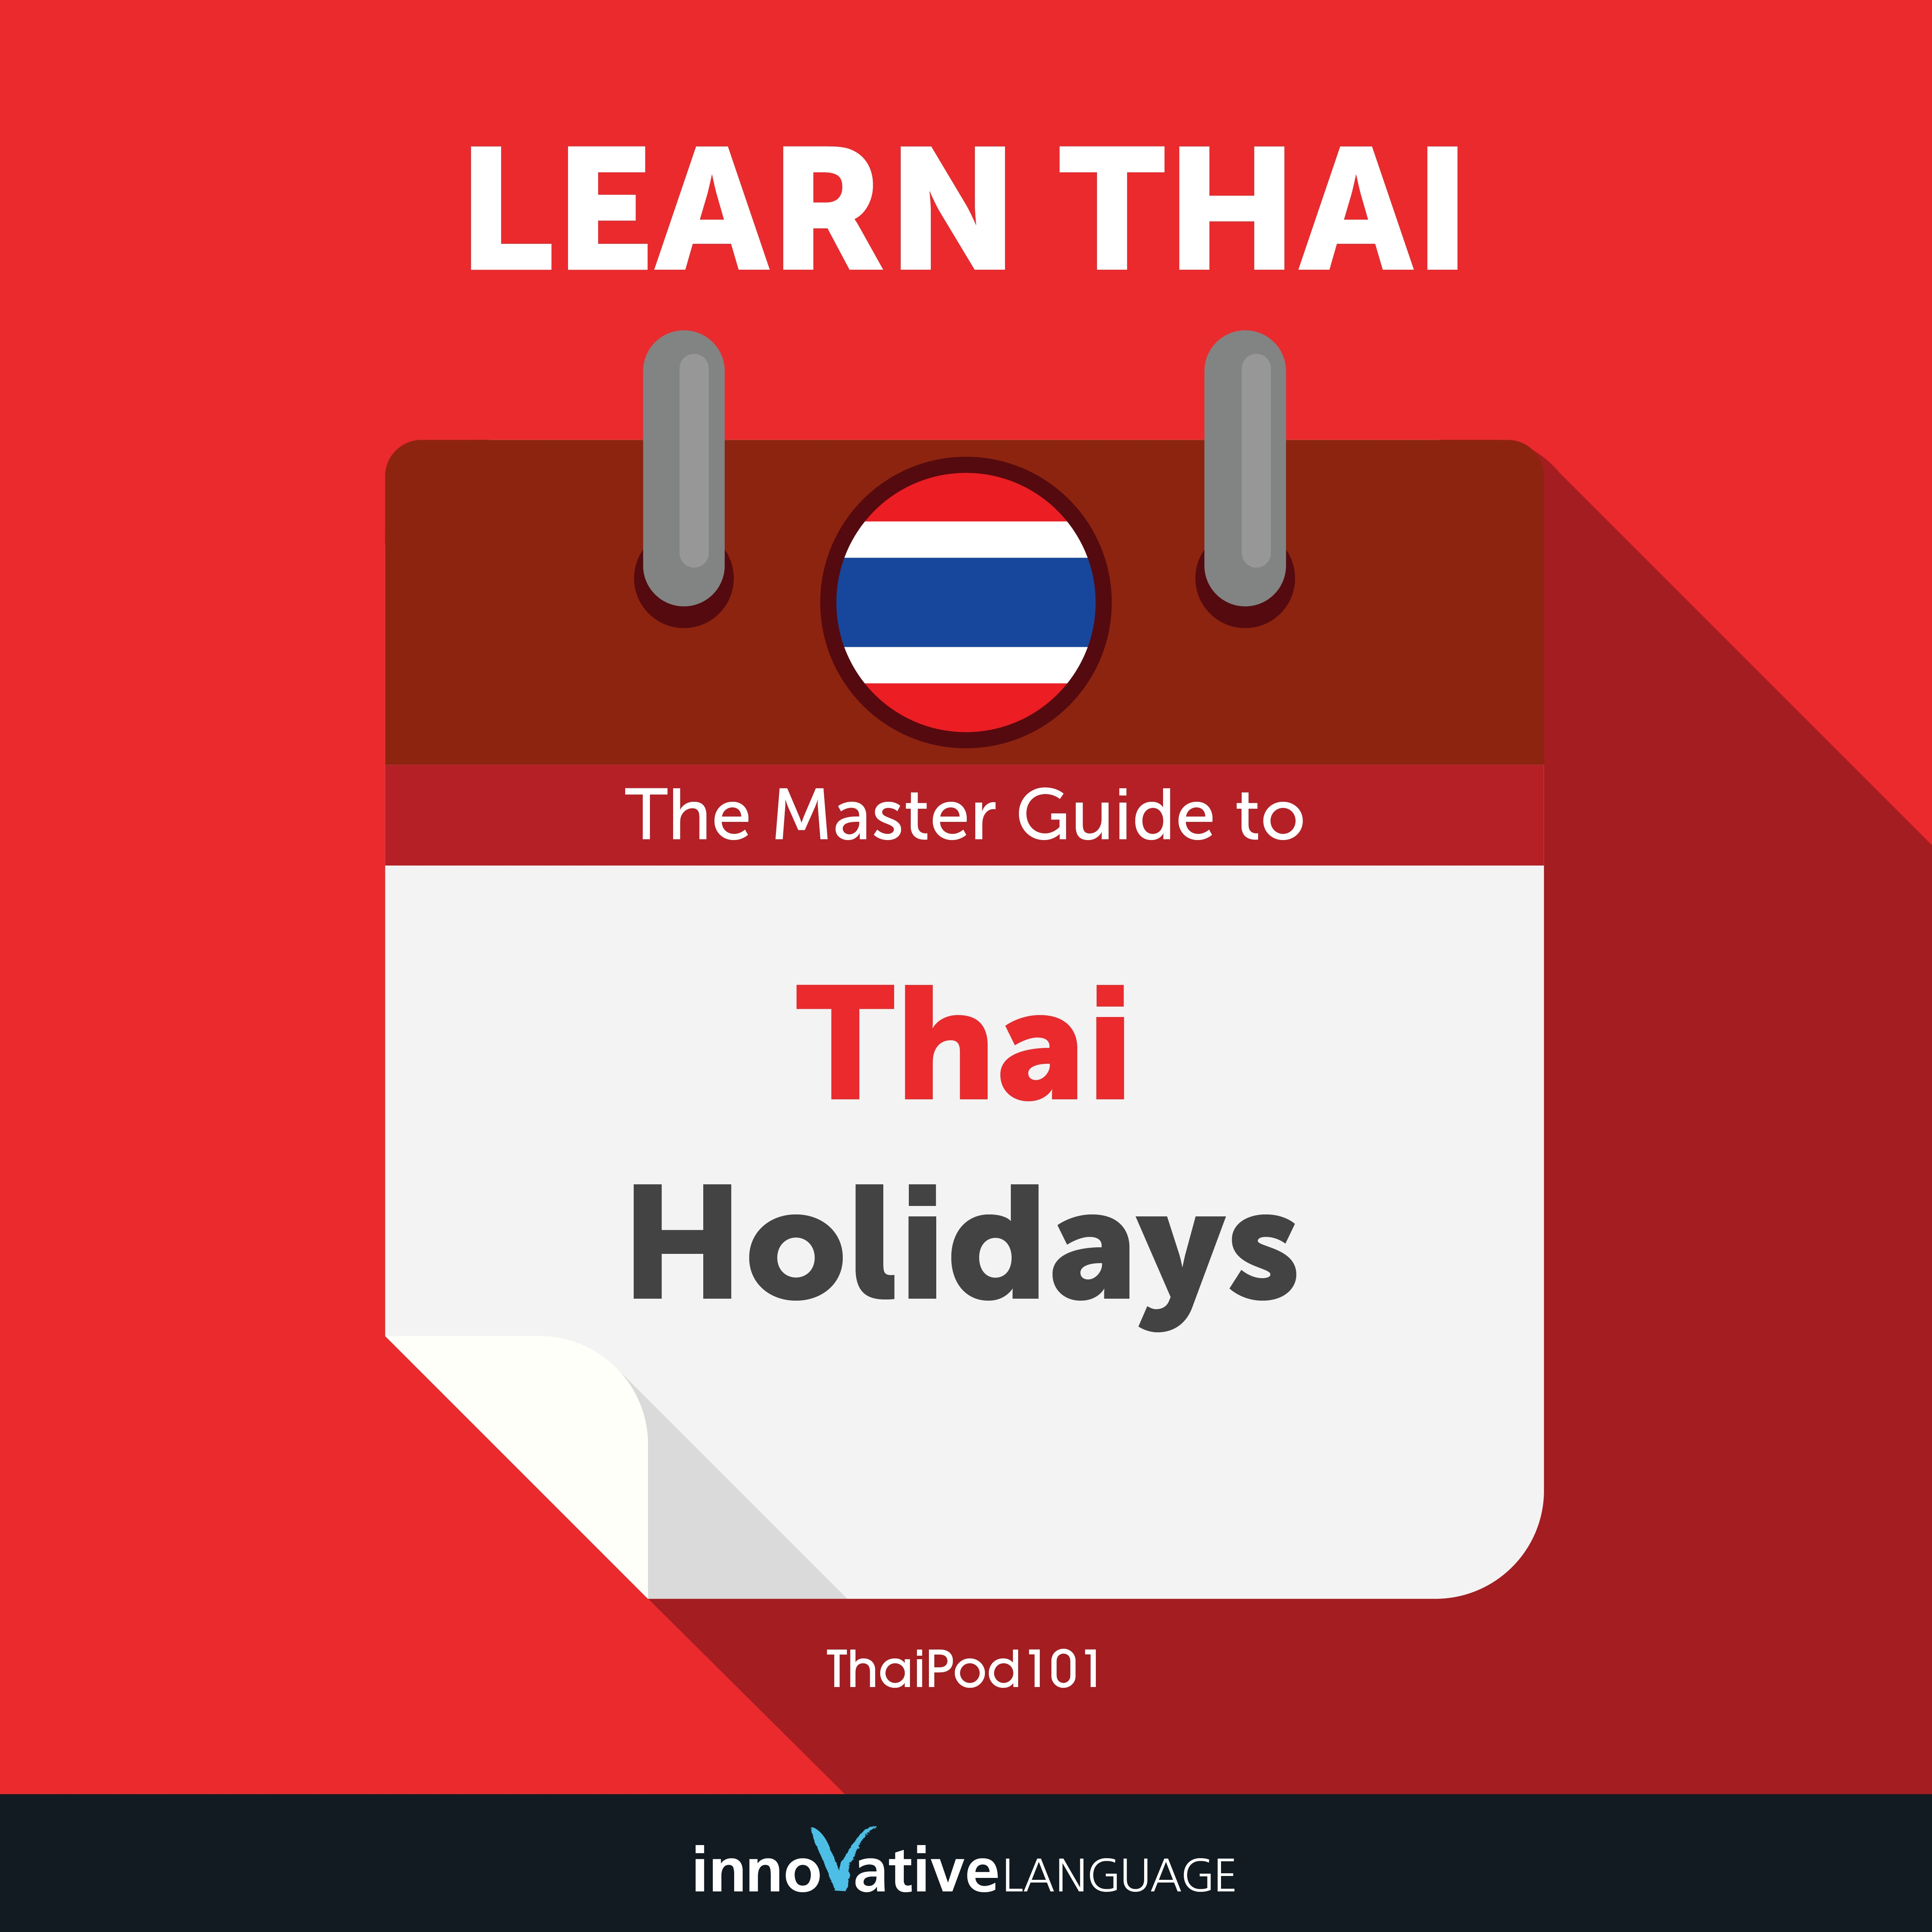 Audiobook Thai: The Master Guide to Thai Holidays for Beginners